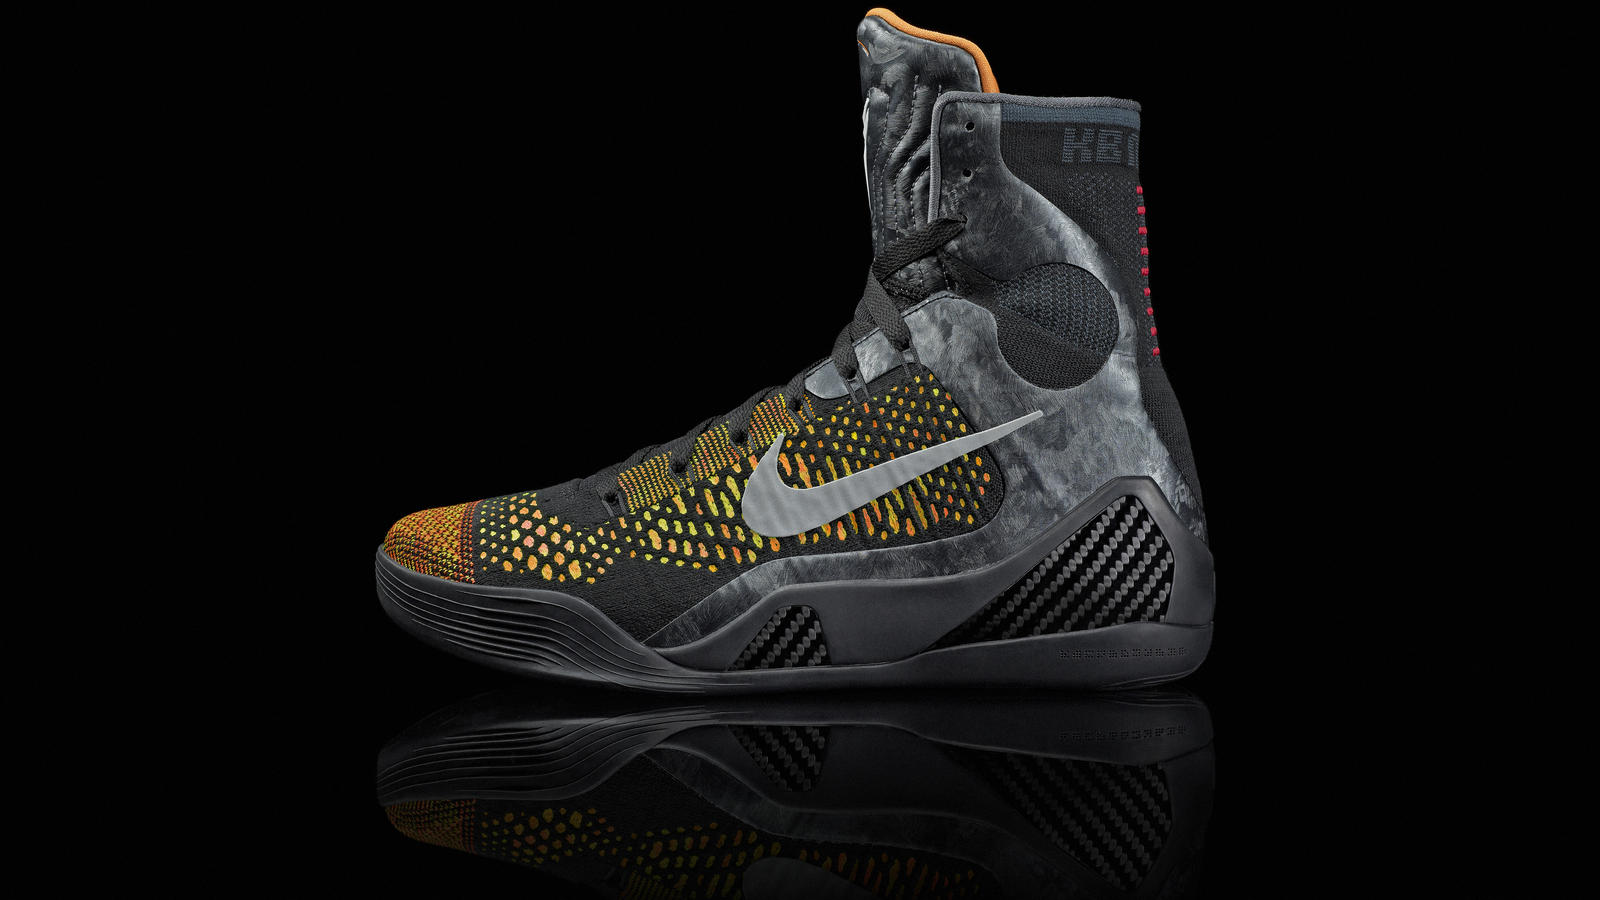 new arrival 29525 557e8 kobe ix flynight inspire colorup lat. kobe ix flynight whtgry lat.  kobe ix flynight whtgry det v2. kobe ix flynight perspective det v1